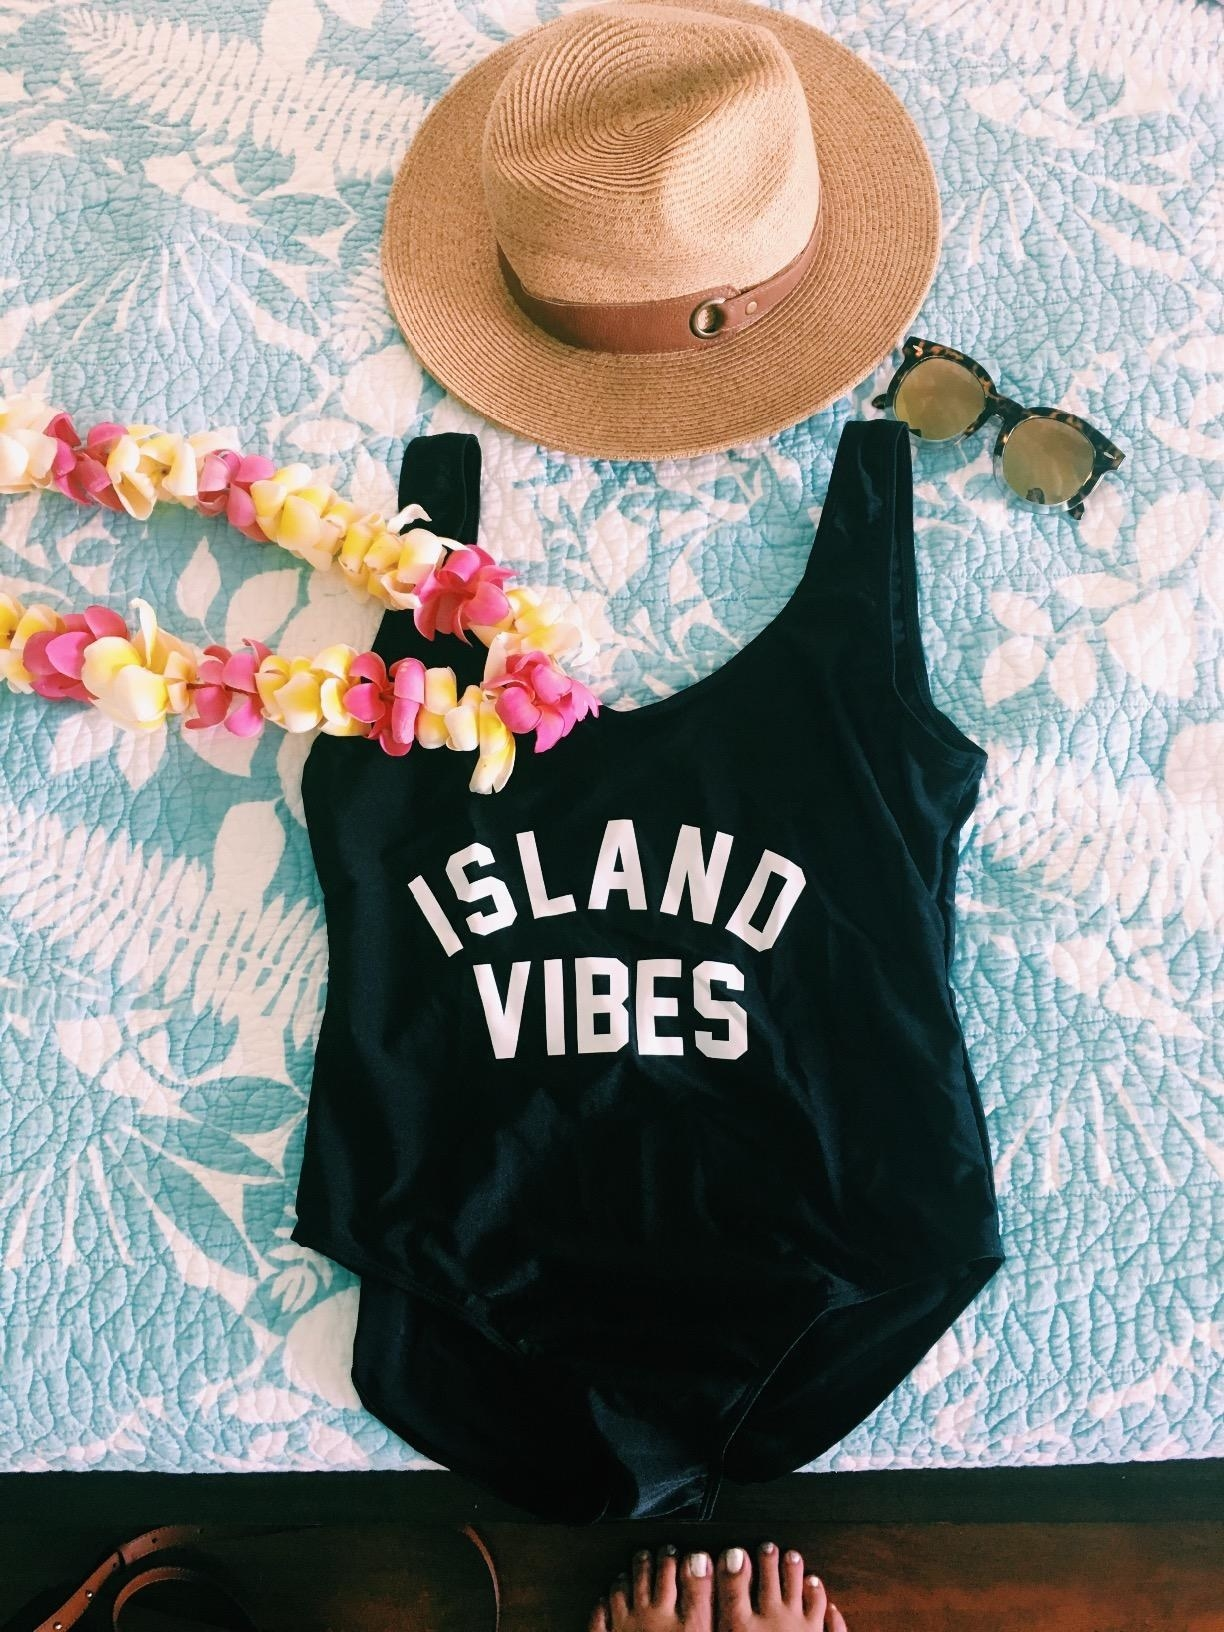 one piece that says island vibes